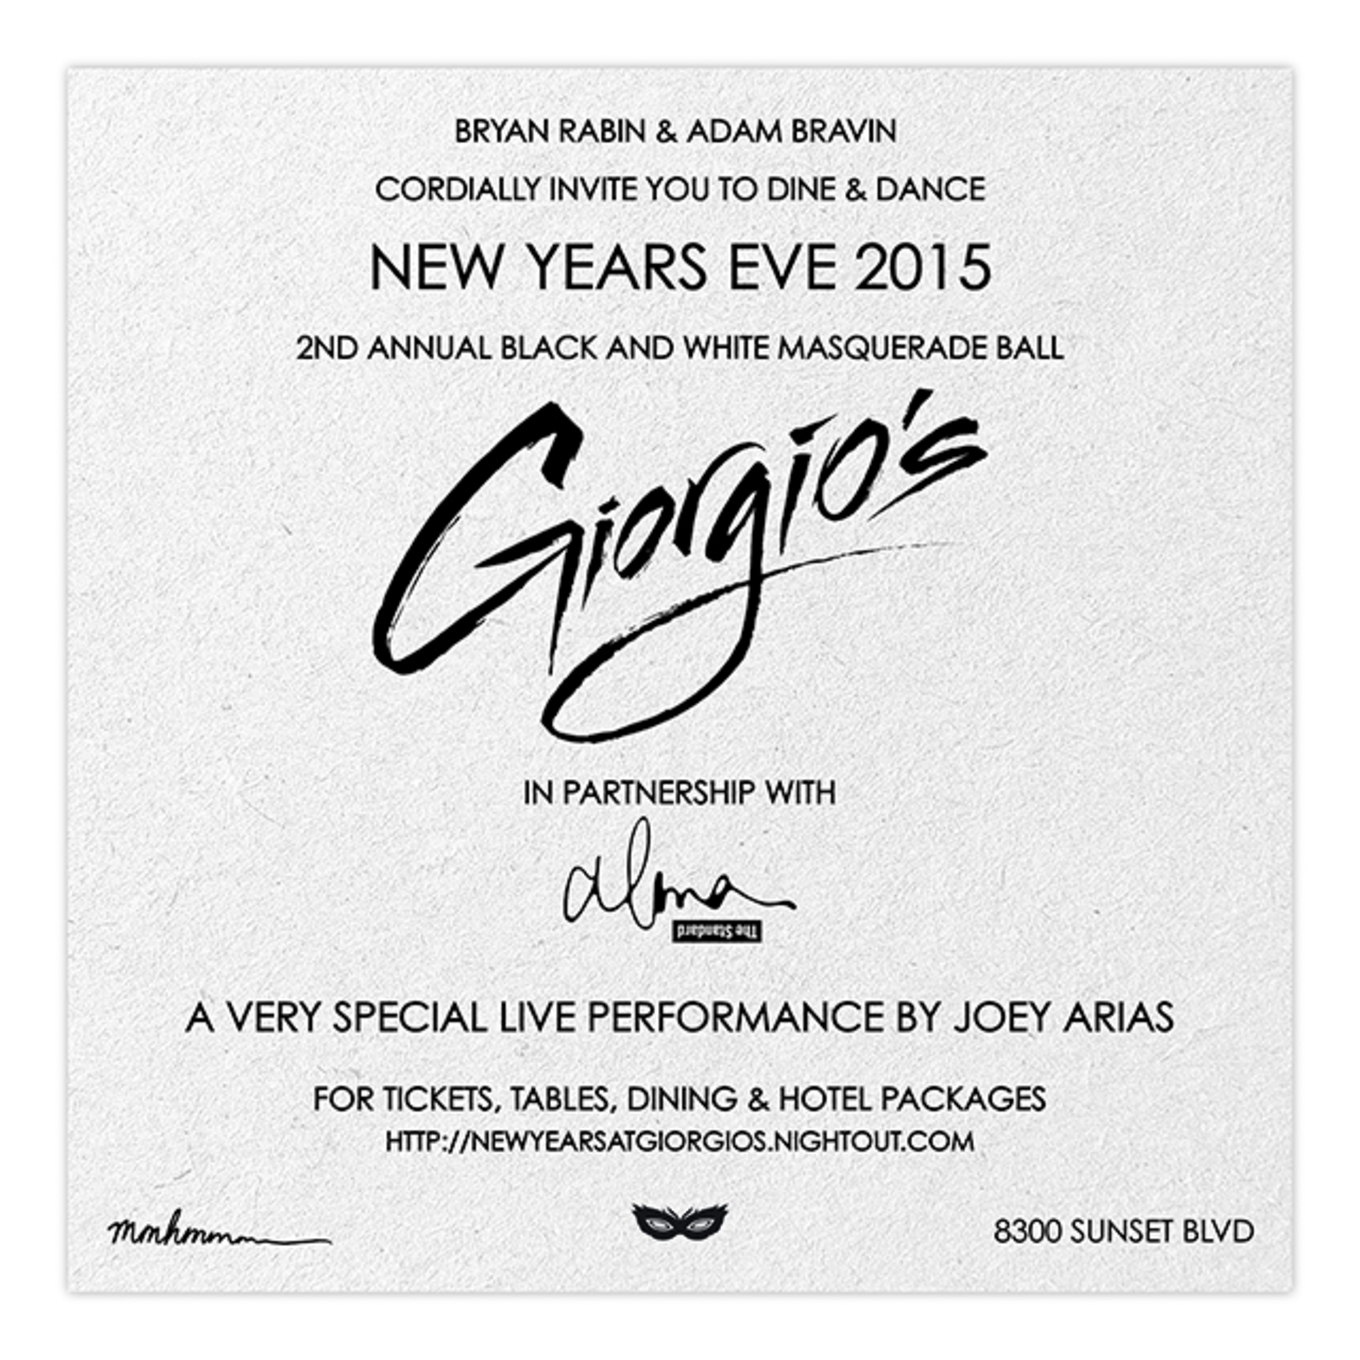 bryan rabin and adam bravin present the 2nd annual new years eve black white masquerade ball at the legendary giorgios with a performance by joey arias